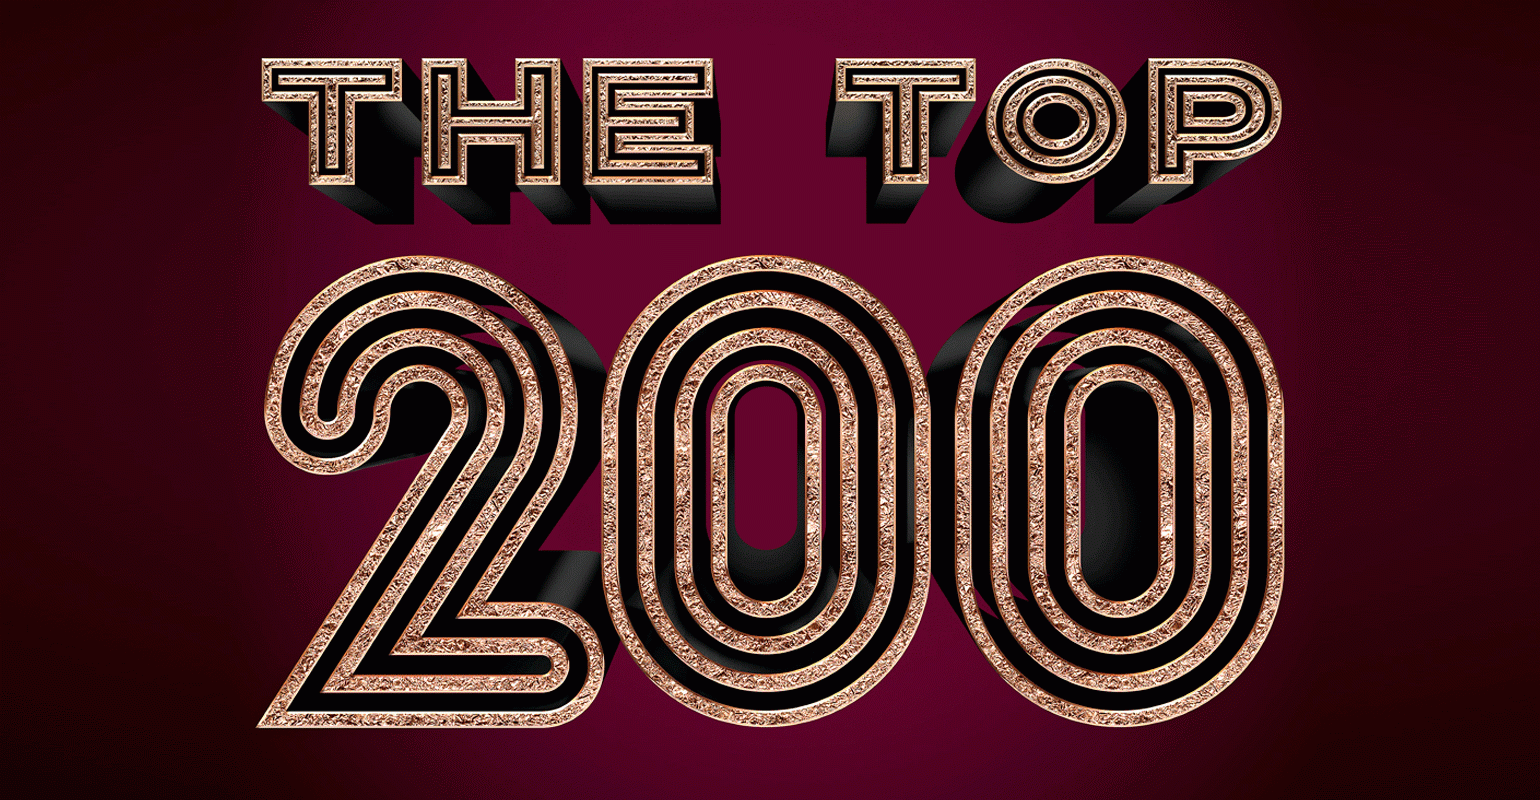 Nation's Restaurant News: The Top 200